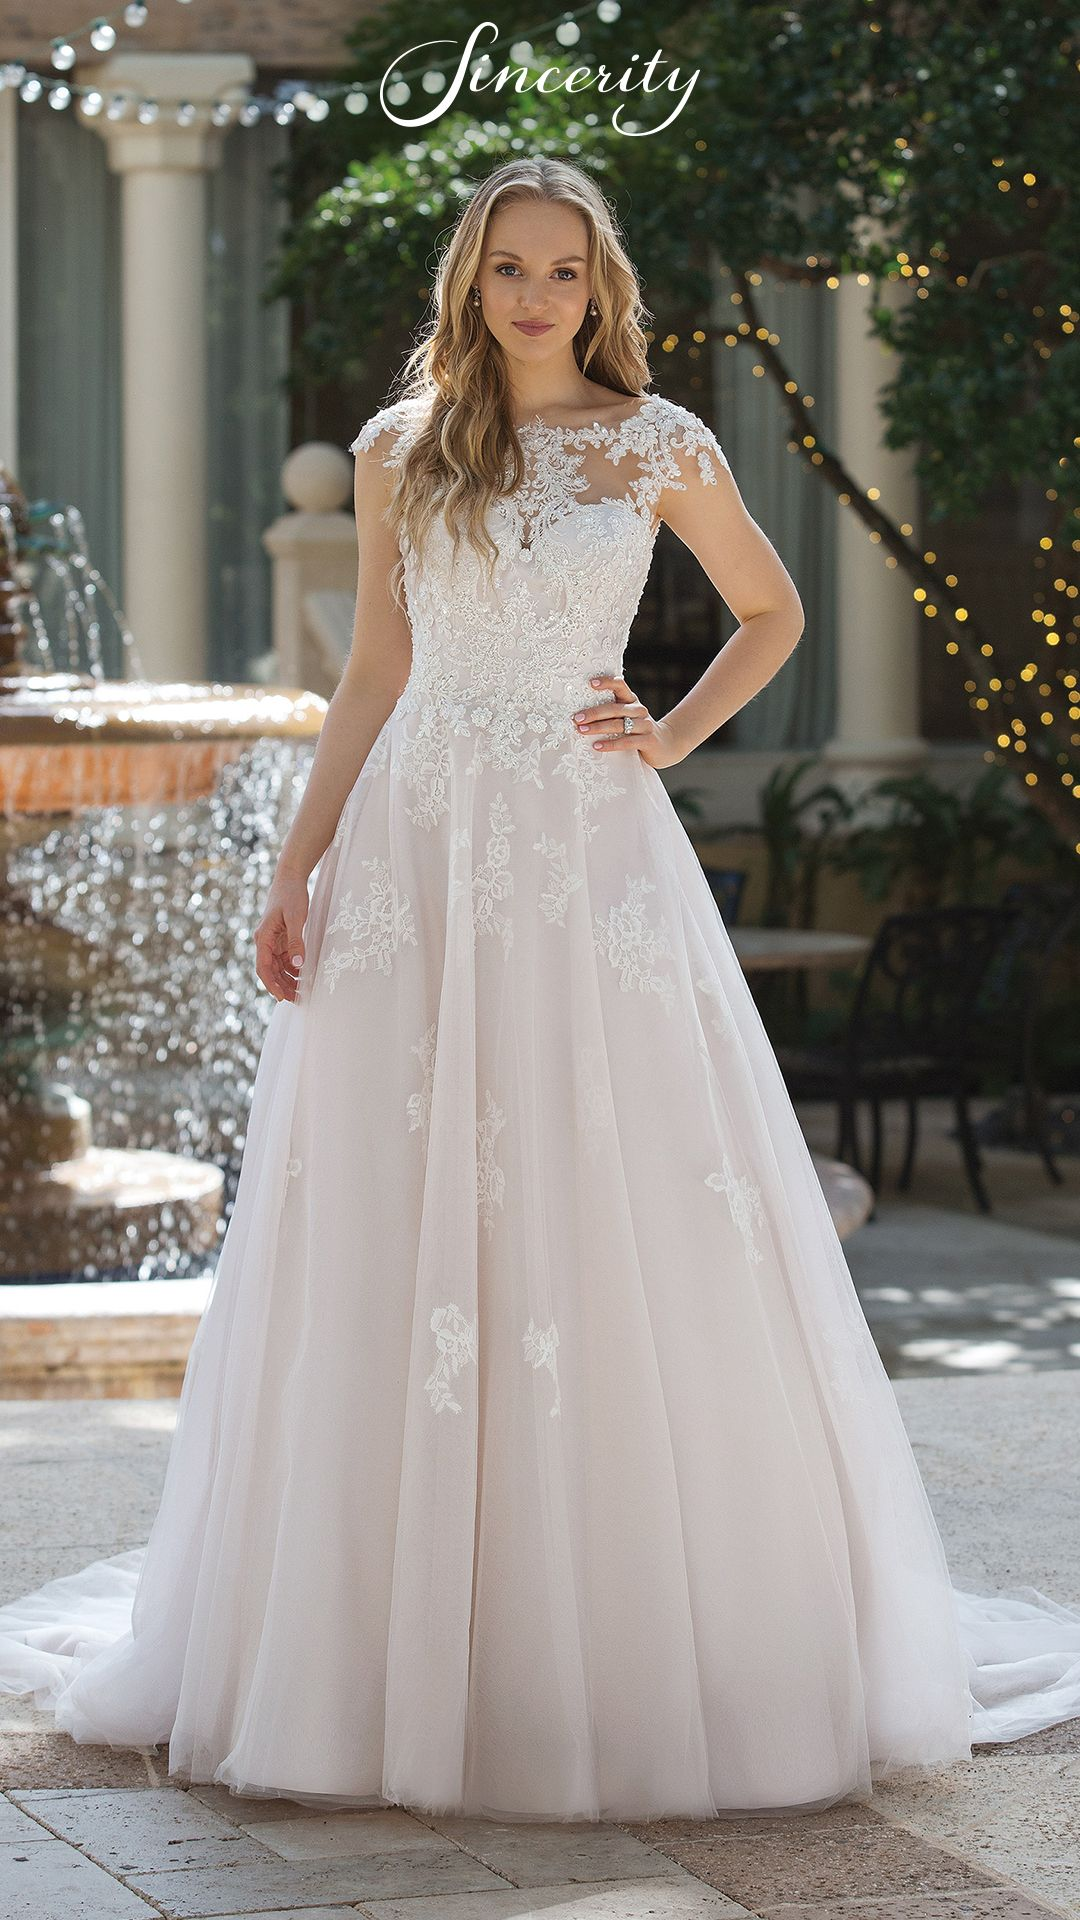 0451cc39d44 Feel like a princess on your wedding day in this princess ball gown (Style  44101). This look features a beaded lace illusion bodice with cap sleeves